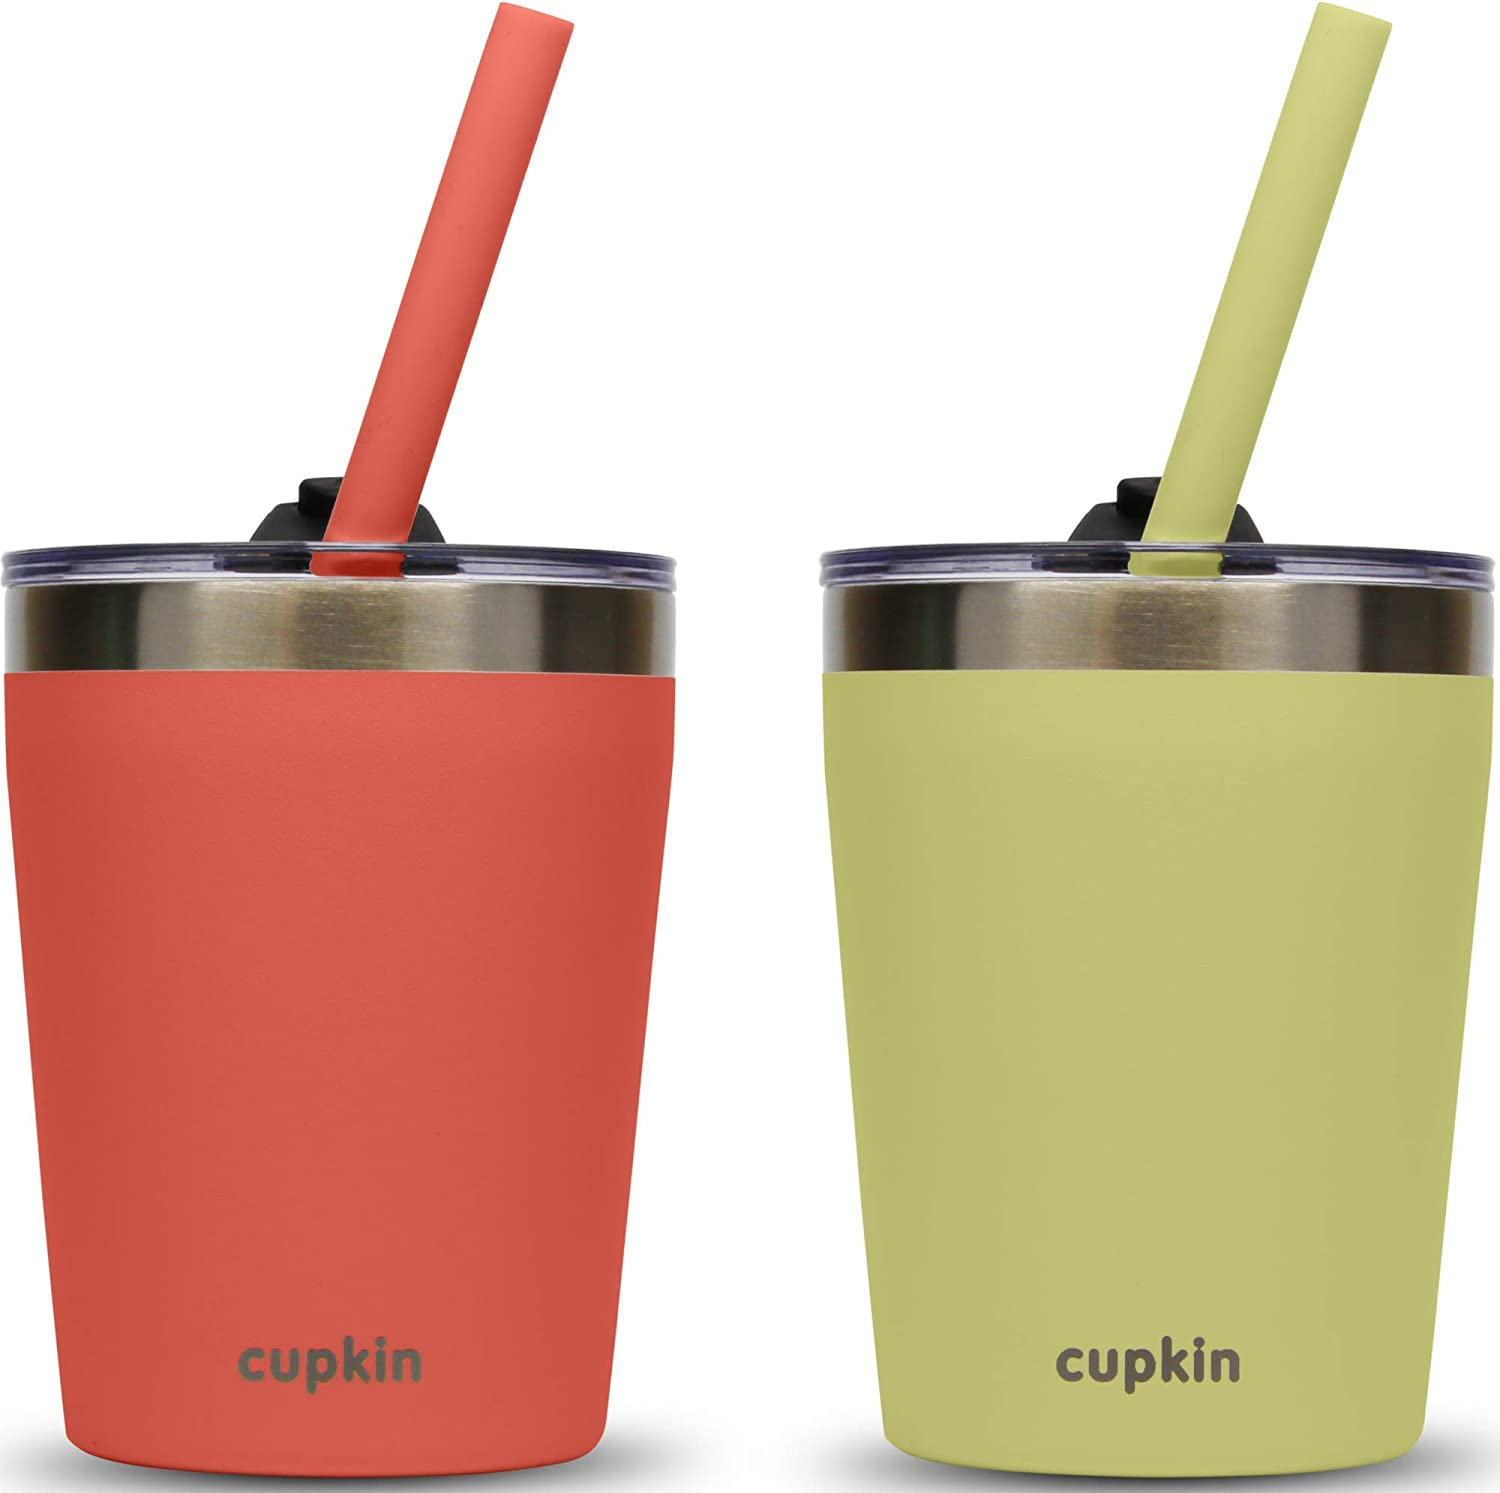 Stackable Stainless Steel Kids Cups for Toddlers (EASY to Clean) - Set of 2 Powder Coated Vacuum Insulated Tumblers, 2 Non BPA Lids & 2 Food Grade Reusable Silicone Straws (Coral + Yellow, 8.5 OZ)